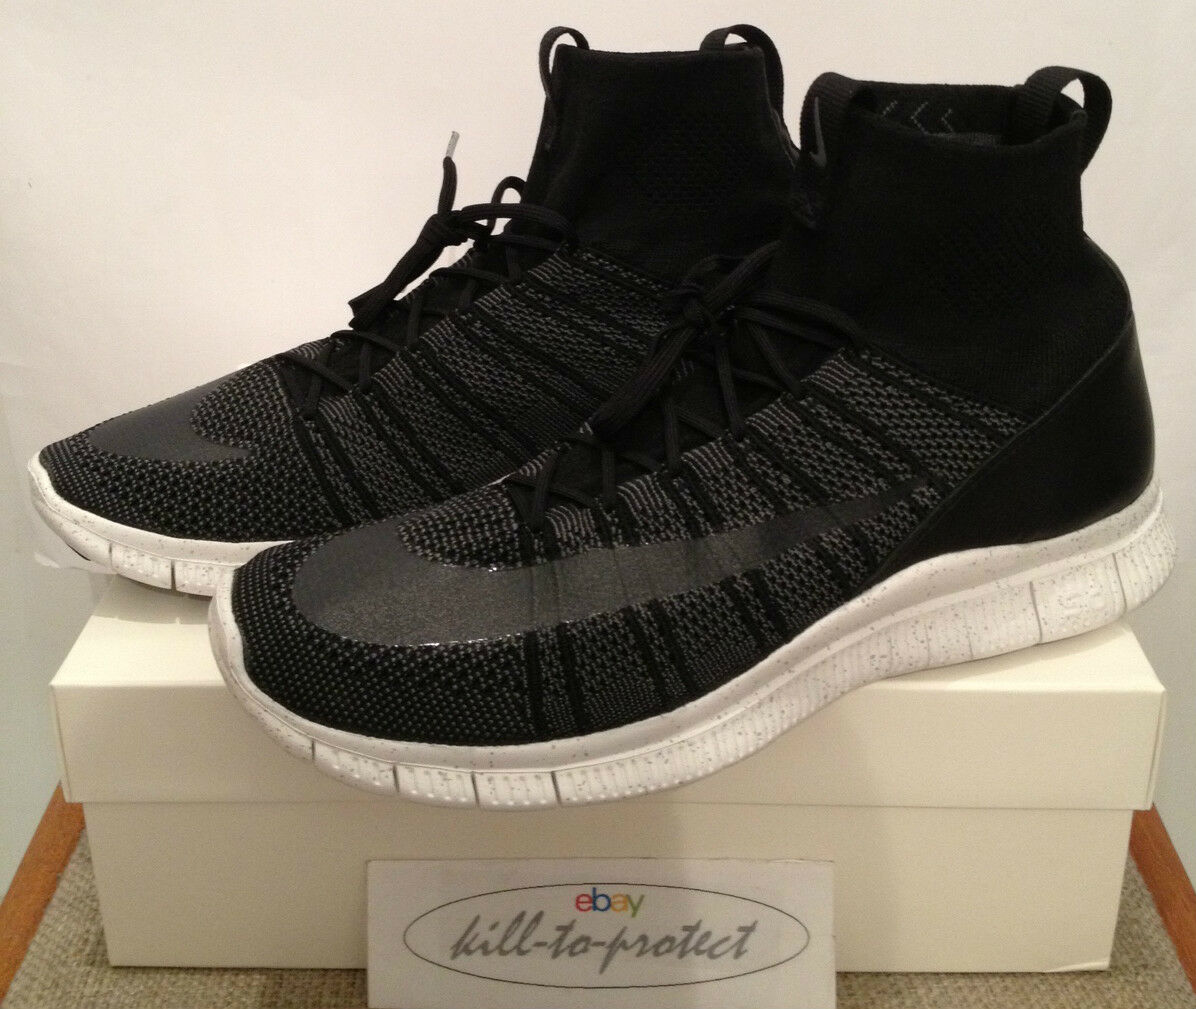 NIKE HTM FLYKNIT SUPERFLY MERCURIAL Black Sz US12 UK11 Free 667978-001 TZ 2014